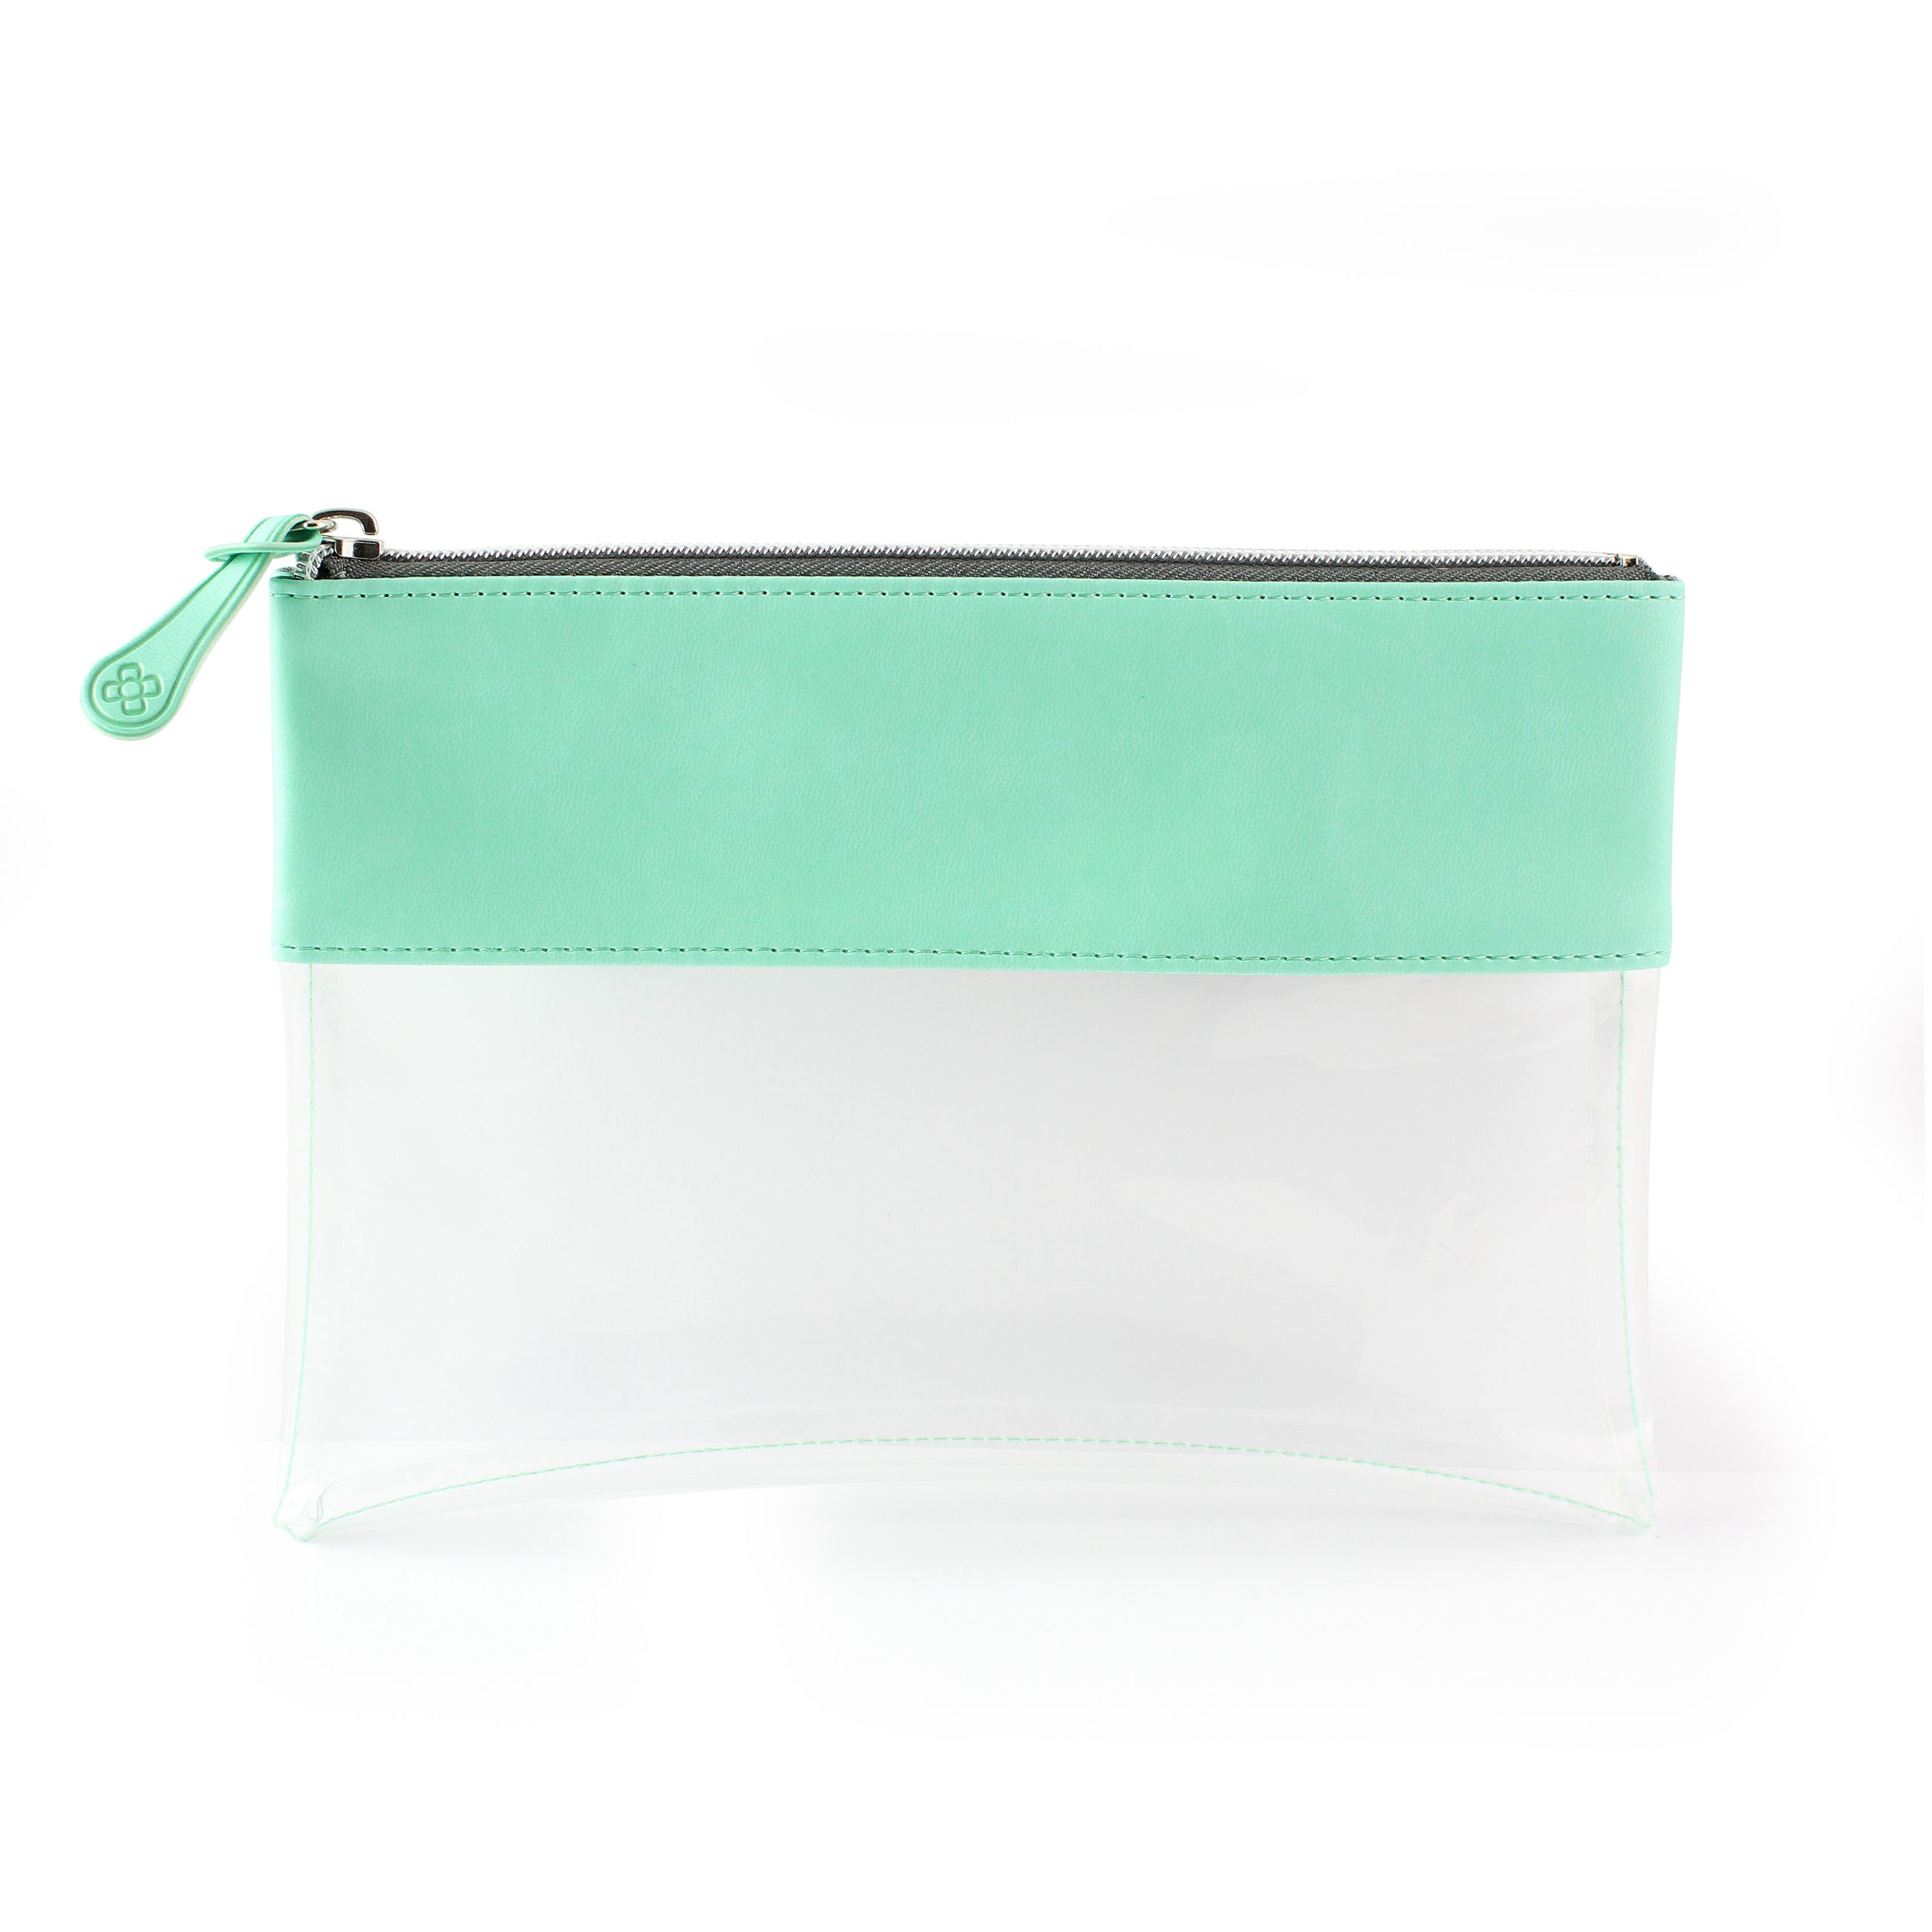 Peppermint Clear Zipped Pouch ideal as a travel pouch or pencil case.